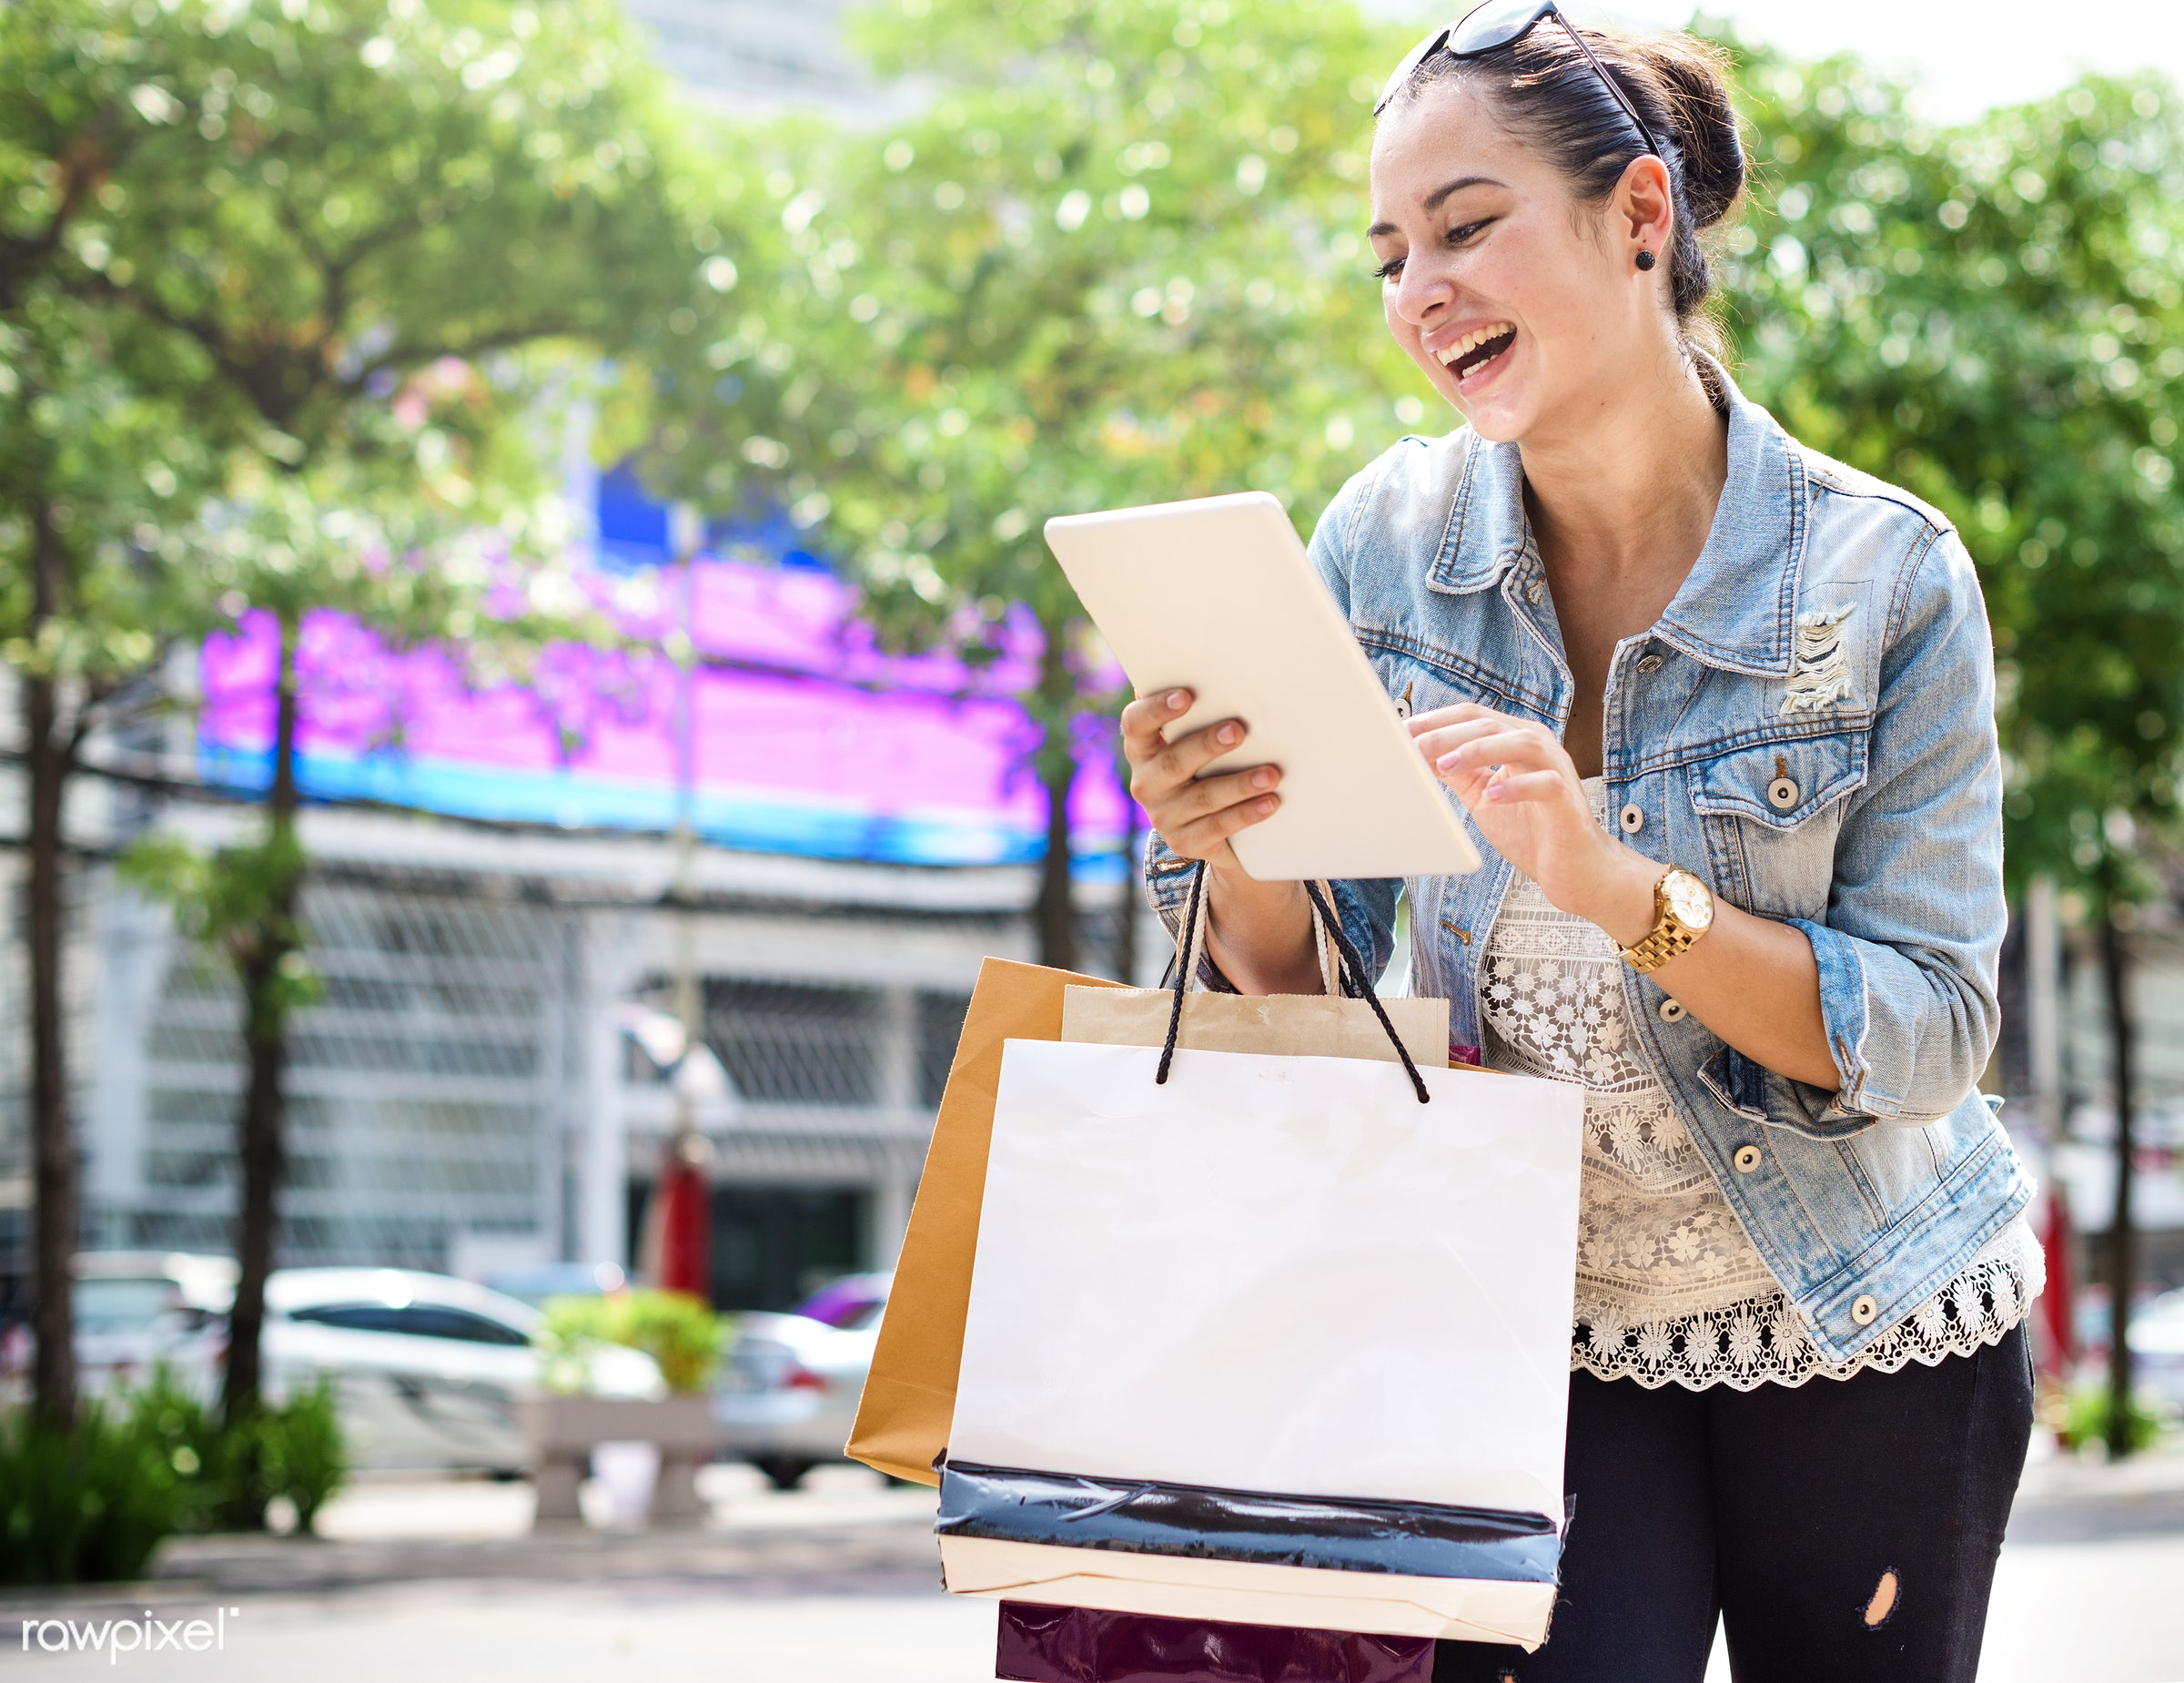 buyer, buying, casual, cheerful, commerce, connection, consumer, consumerism, customer, digital tablet, excited, girl,...